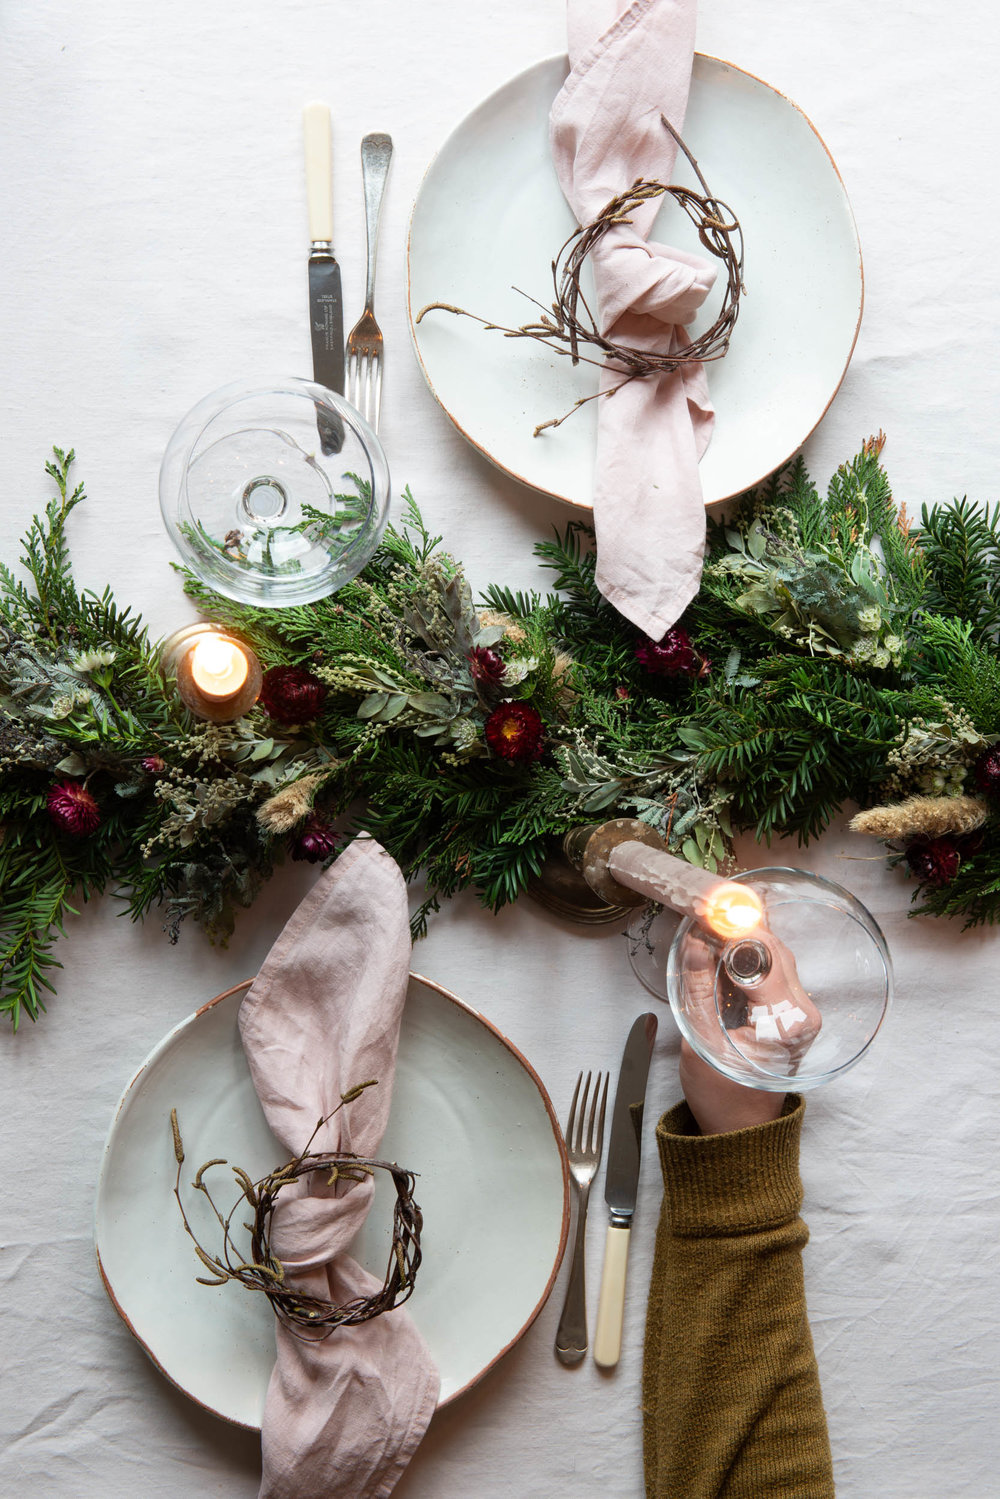 5 steps to lay a simple and festive table